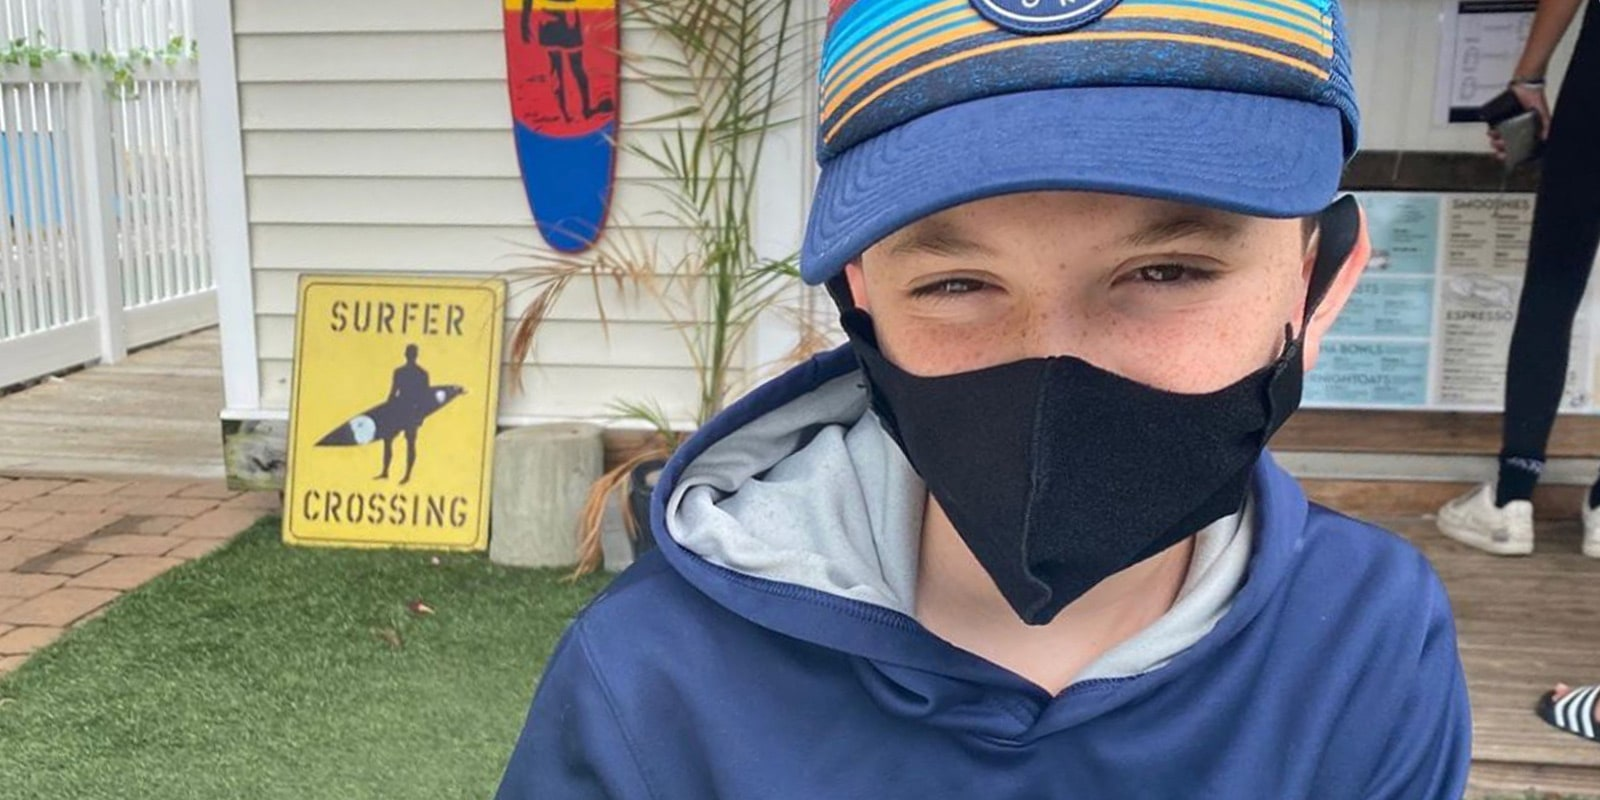 New Jersey Mandates Masks Outdoors when Social Distancing is Not Possible